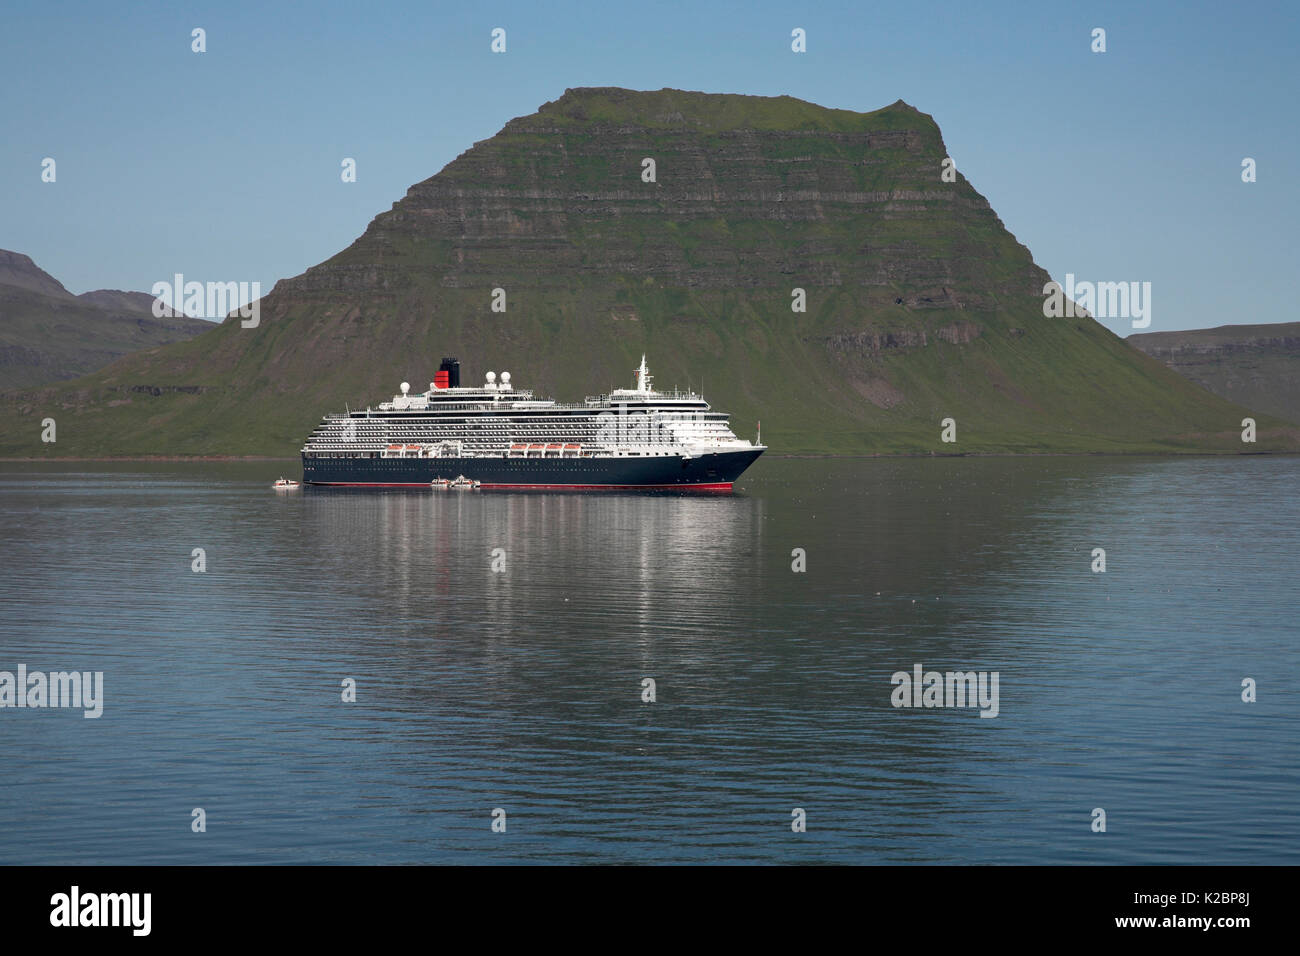 Cunard cruise liner 'Queen Victoria' anchored at Kirgjufell, Grundarfjordur, Iceland. July 2009. Stock Photo